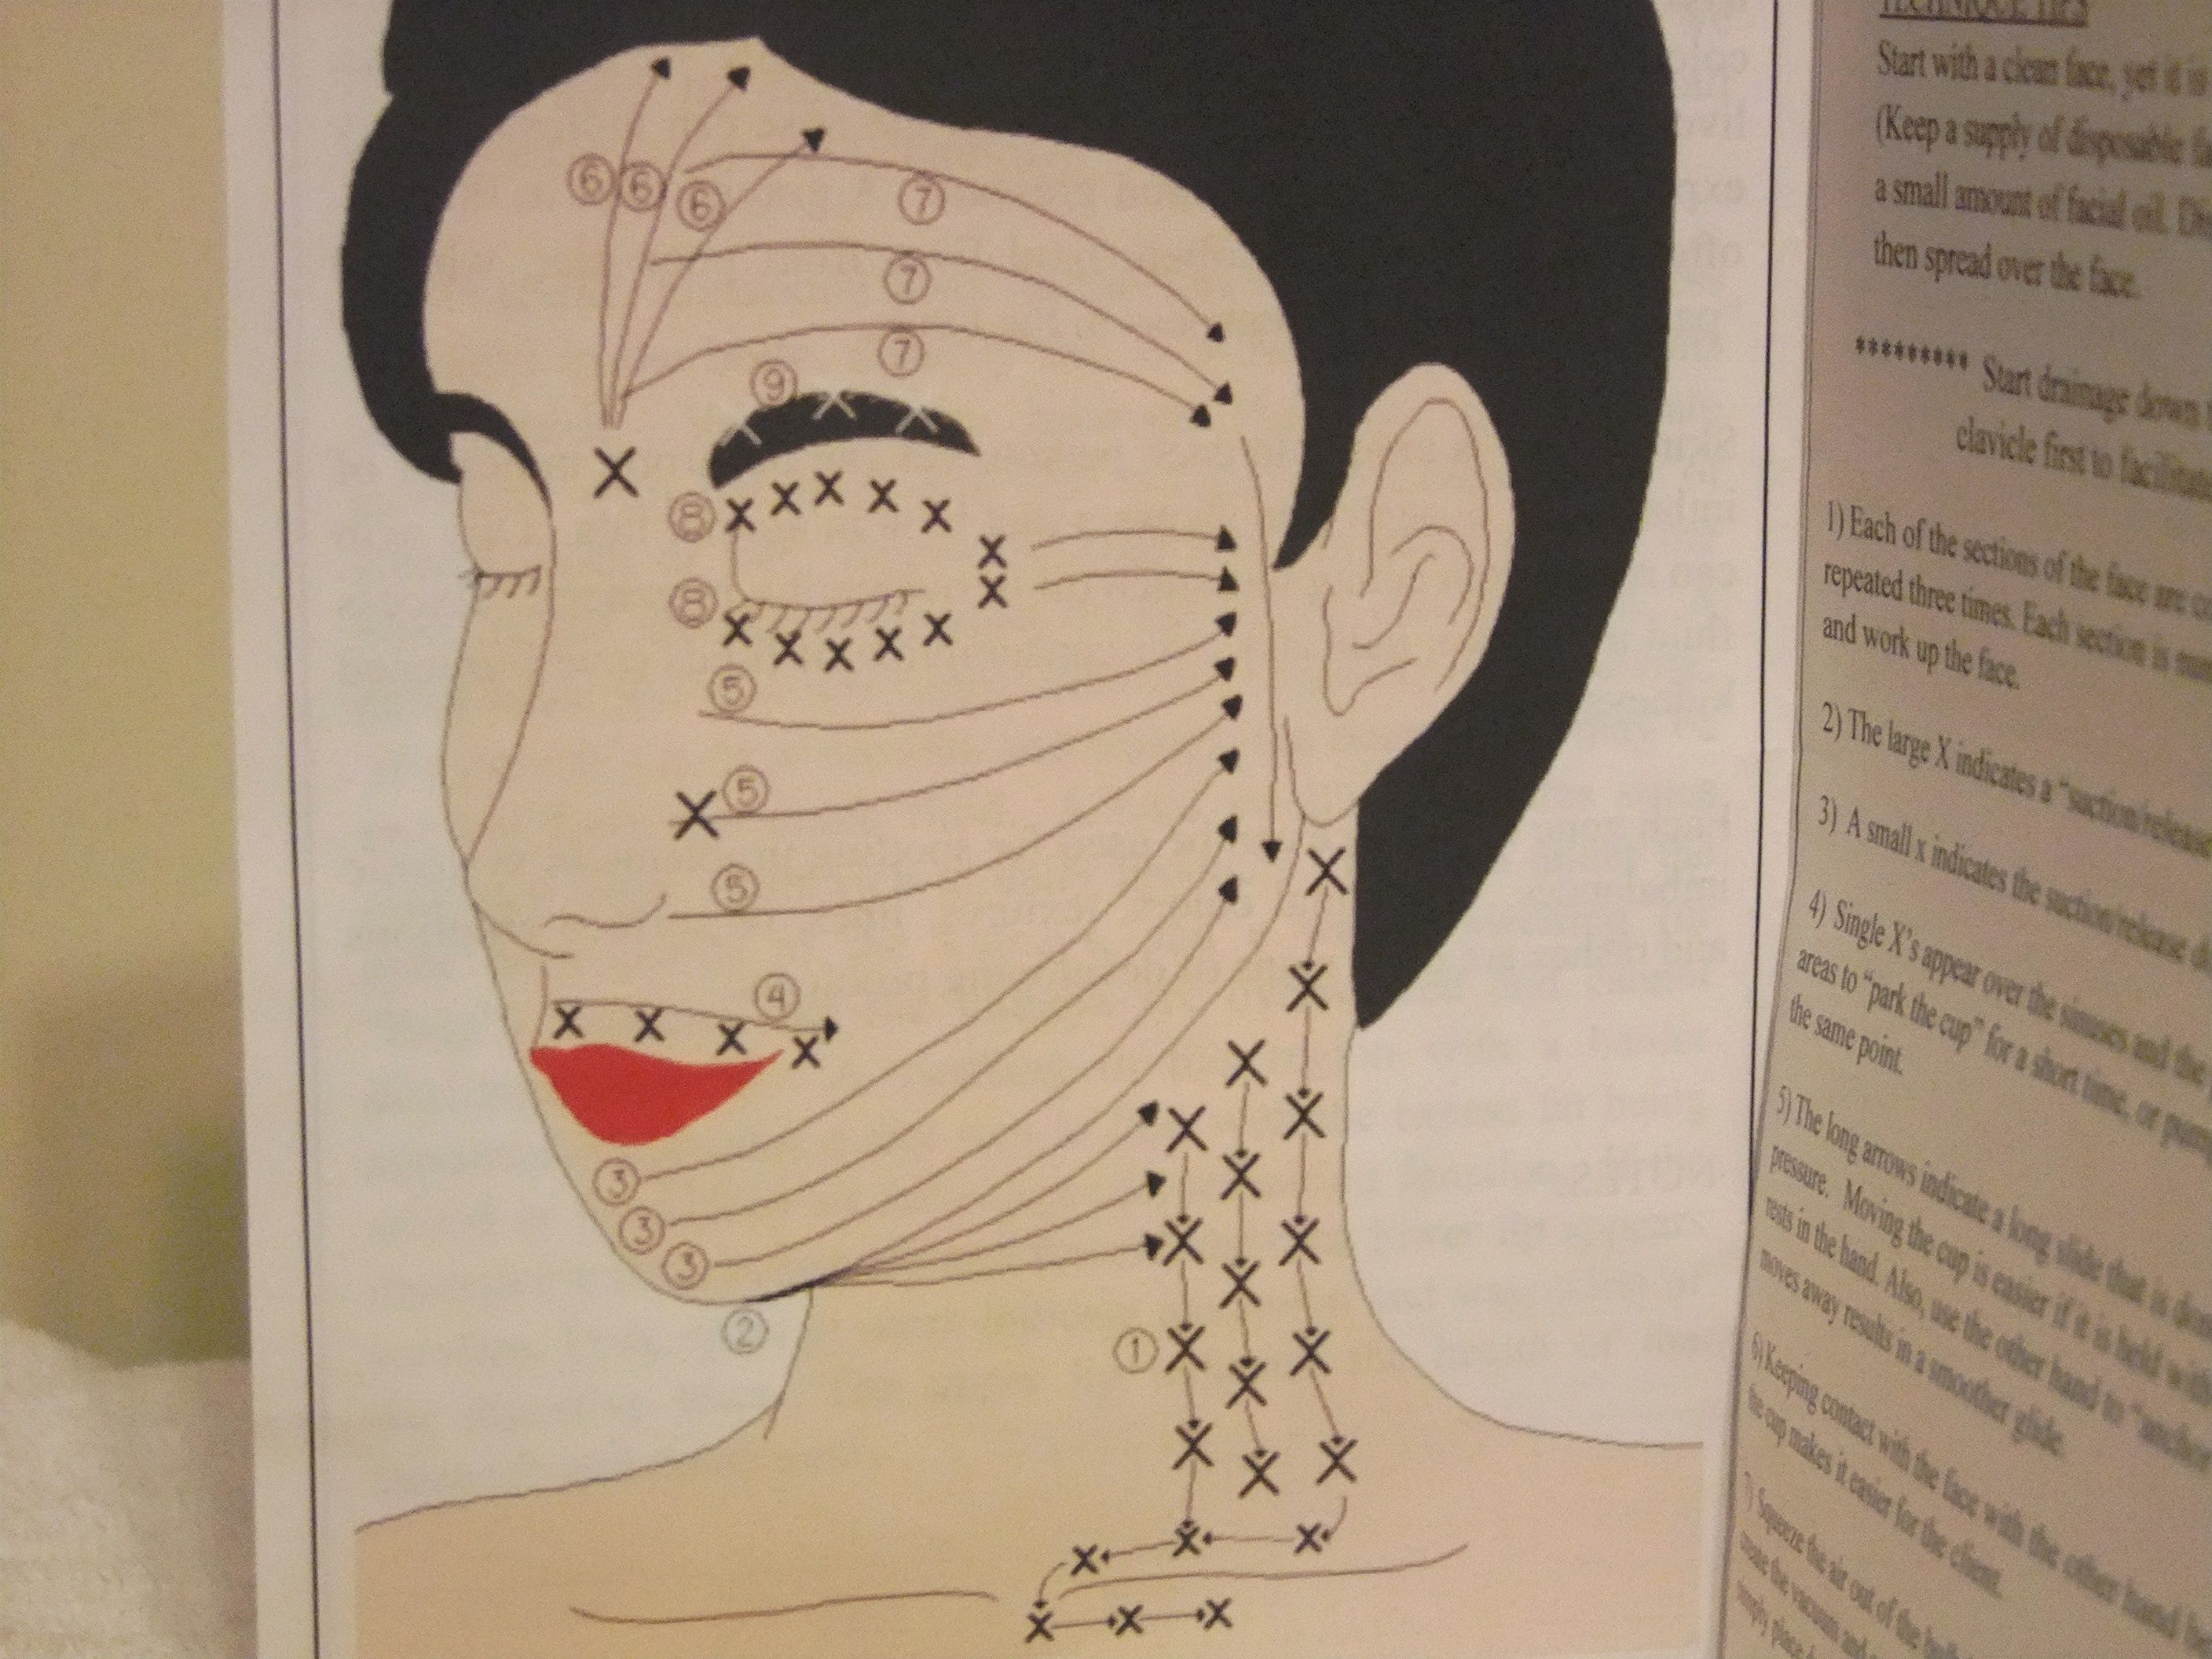 facial lymph nodes diagram four way dimmer switch wiring face drainage pattern x for suction and release